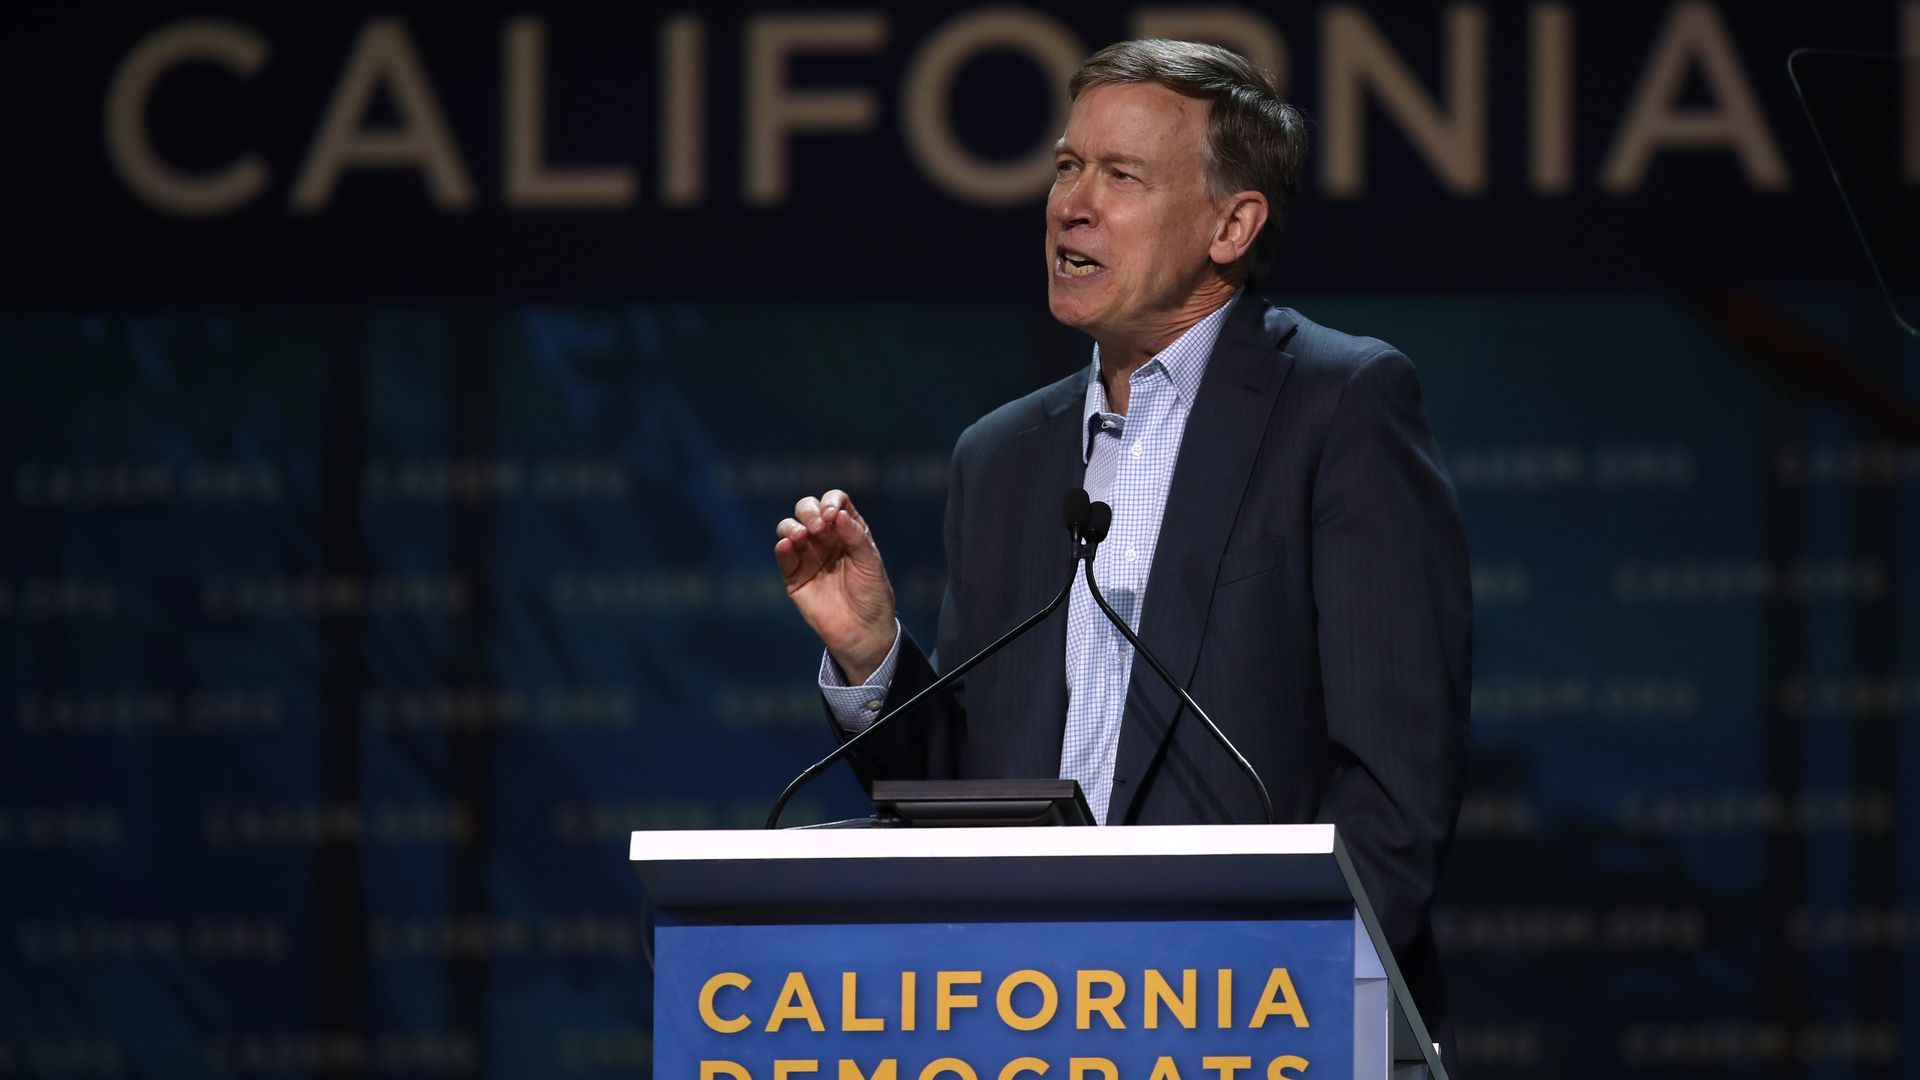 Democratic presidential candidate former Colorado Gov. John Hickenlooper speaks during the California Democrats 2019 State Convention on June 01, 2019 in San Francisco, California.